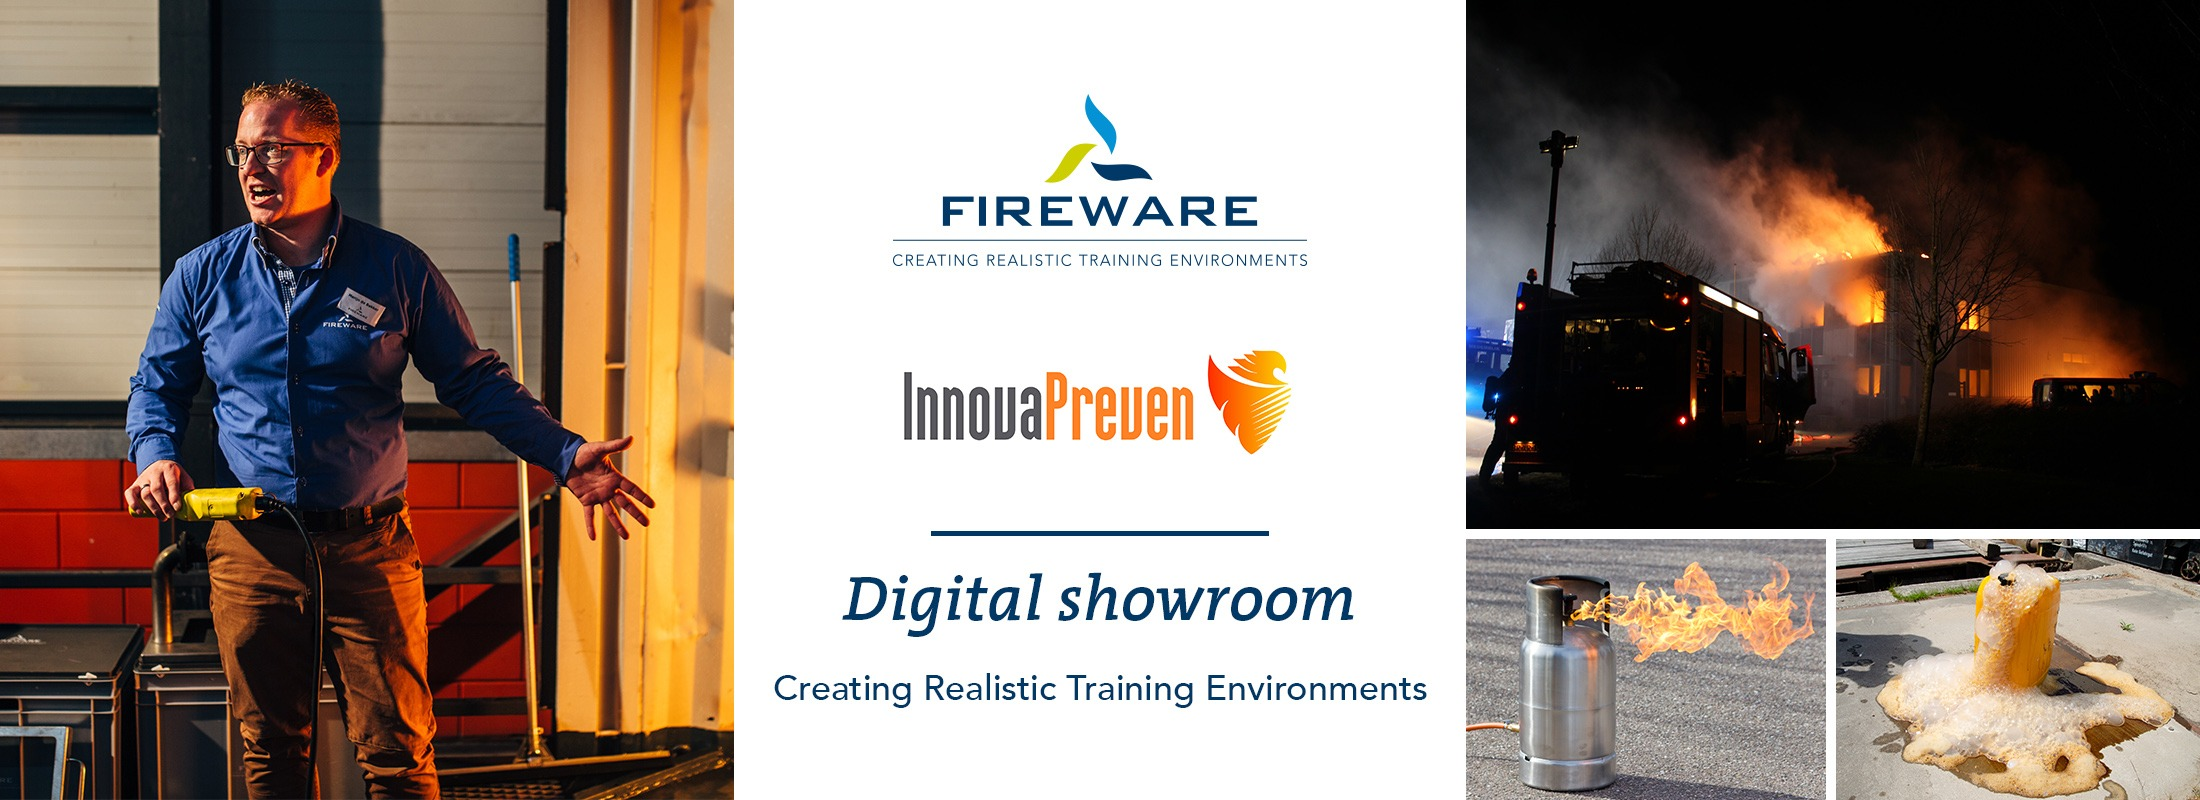 Innovapreven digital showroom